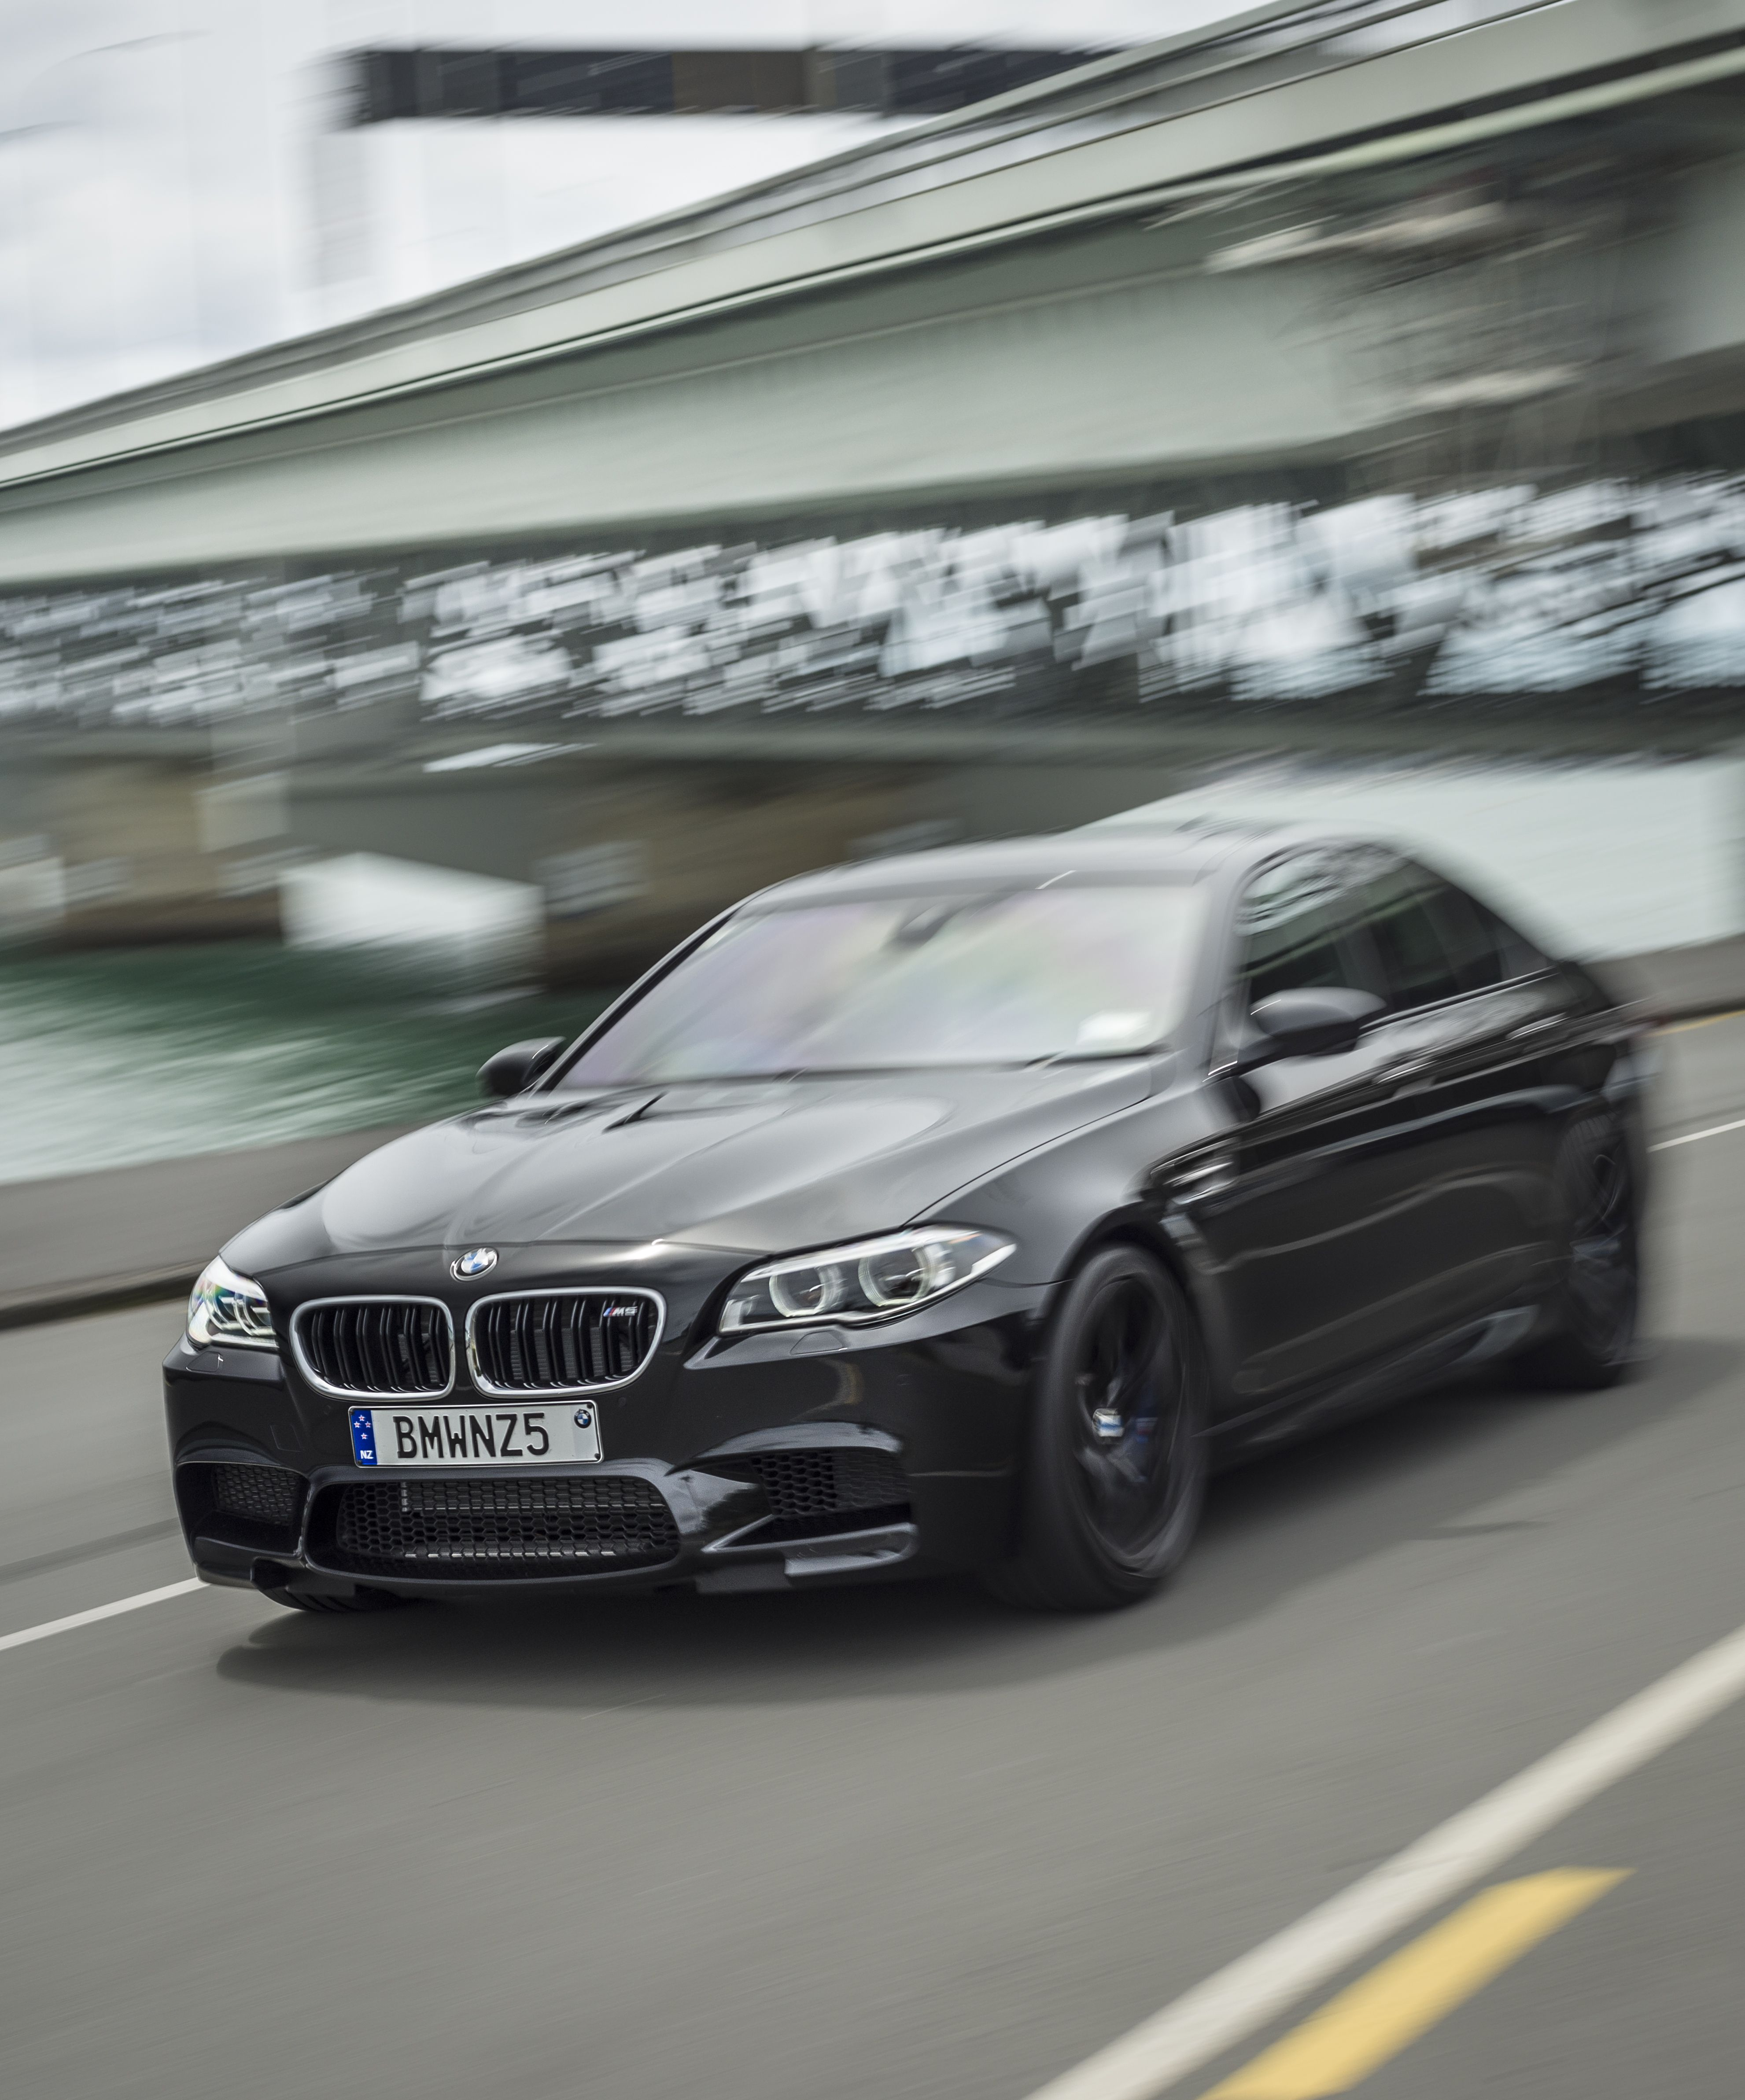 Bmw M5 A T Rex In Conservative Clothing Nz Herald